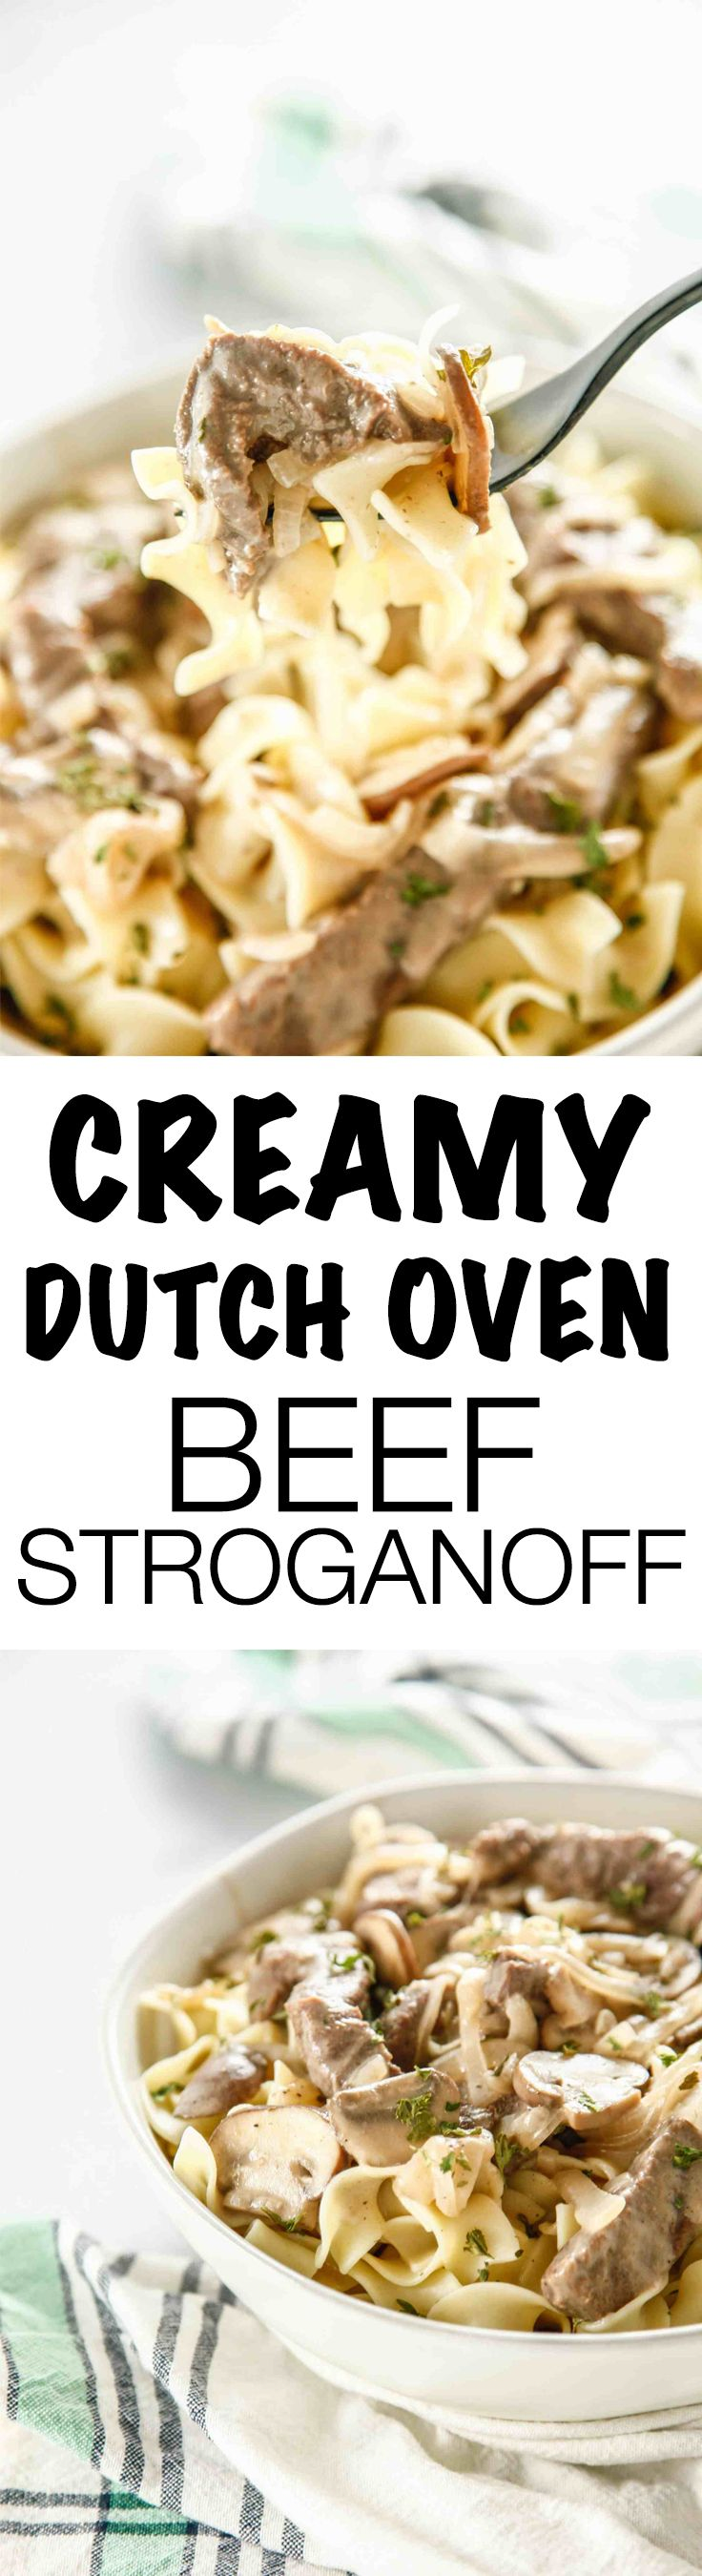 Bring your comfort food game to a new level of awesome with this Creamy Dutch Oven Beef Stroganoff recipe. Creamy beef, onions and mushrooms over tender noodles will always be a family favorite!